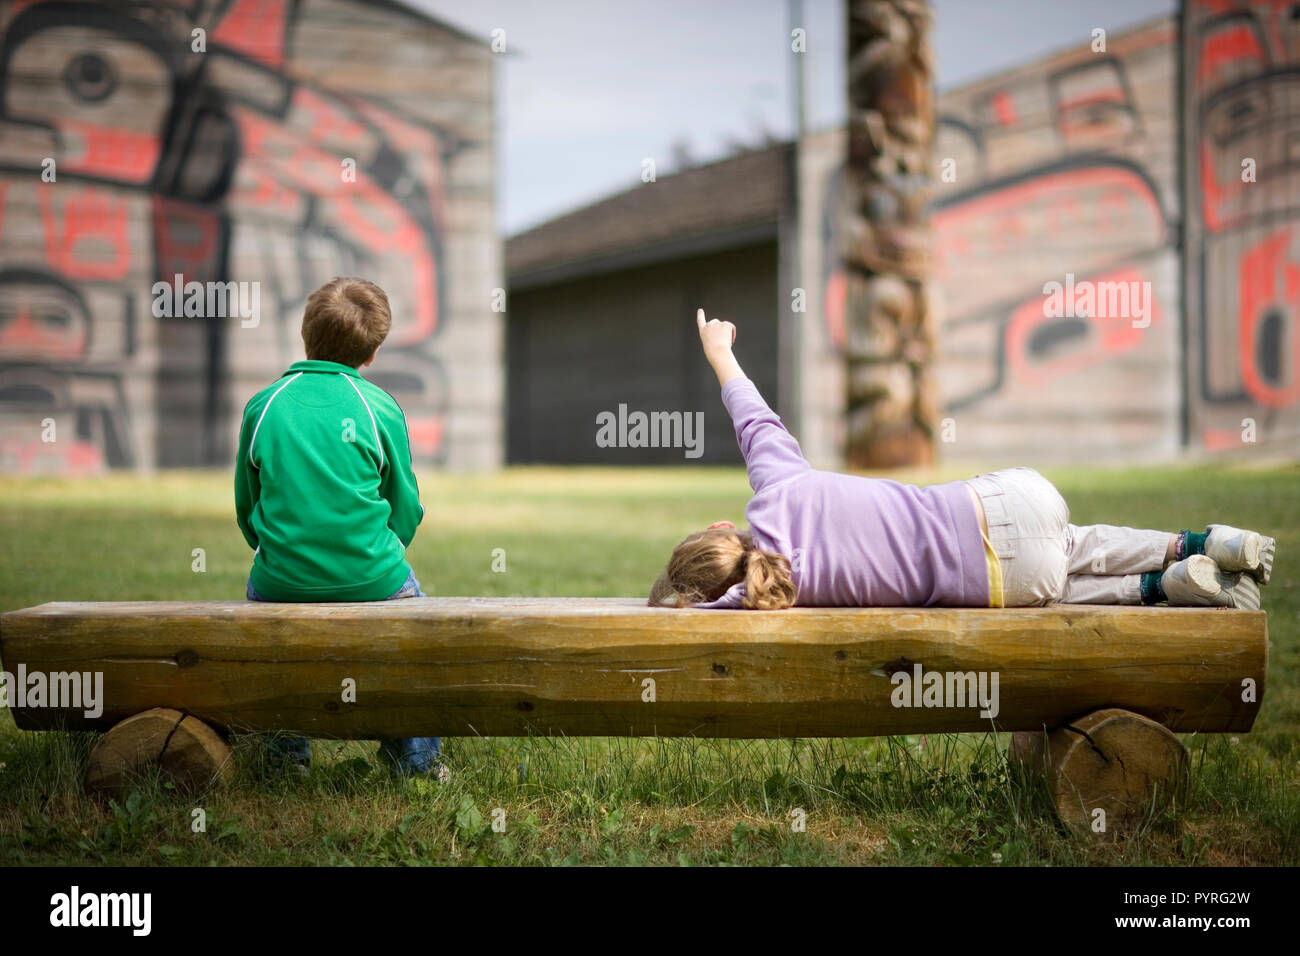 Two children sitting on a wooden bench. - Stock Image